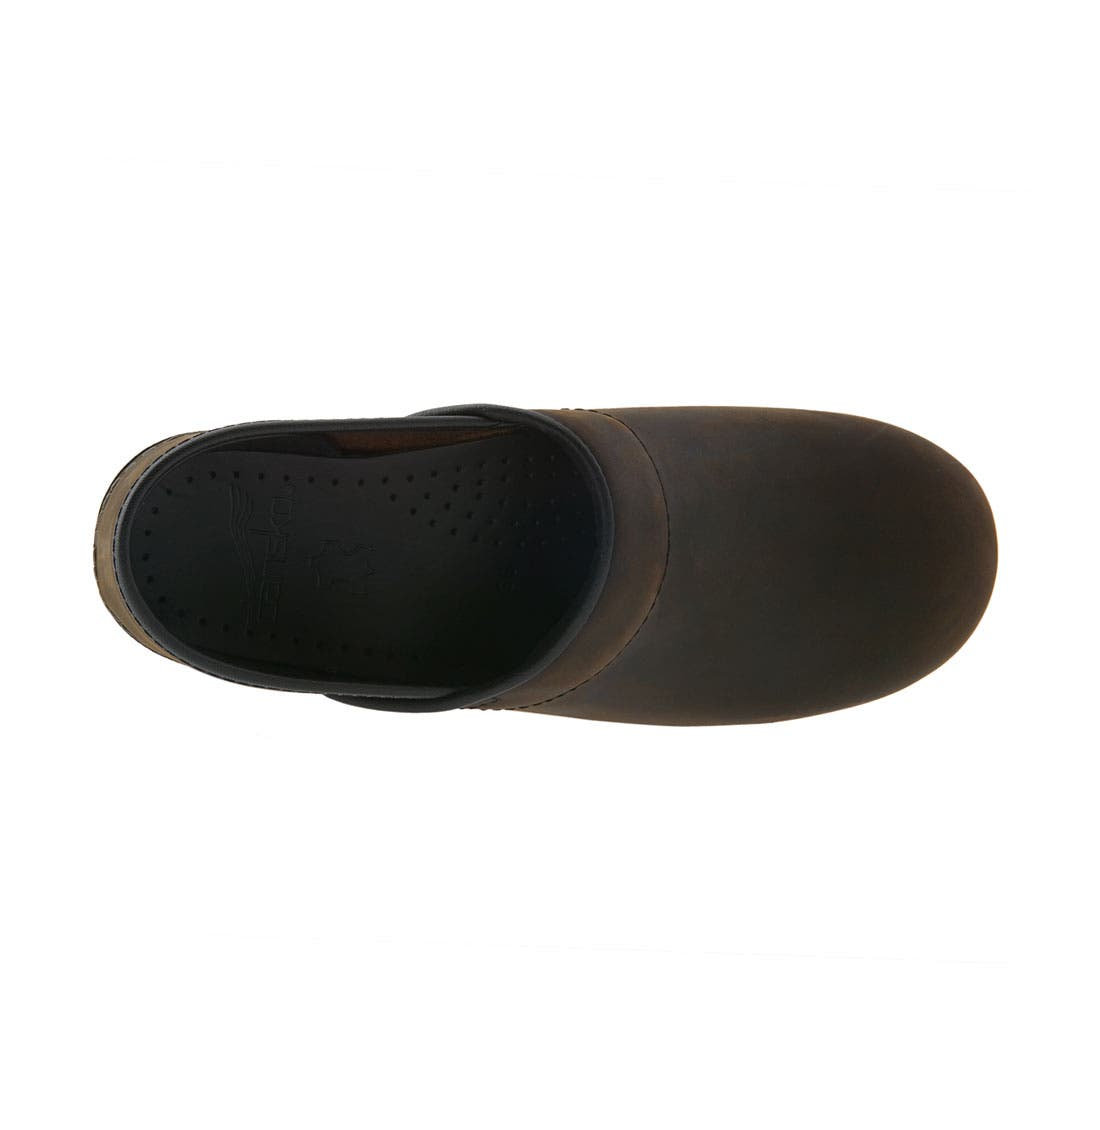 DANSKO,                             'Professional - Narrow' Oiled Leather Clog,                             Alternate thumbnail 4, color,                             ANTIQUE BROWN OILED